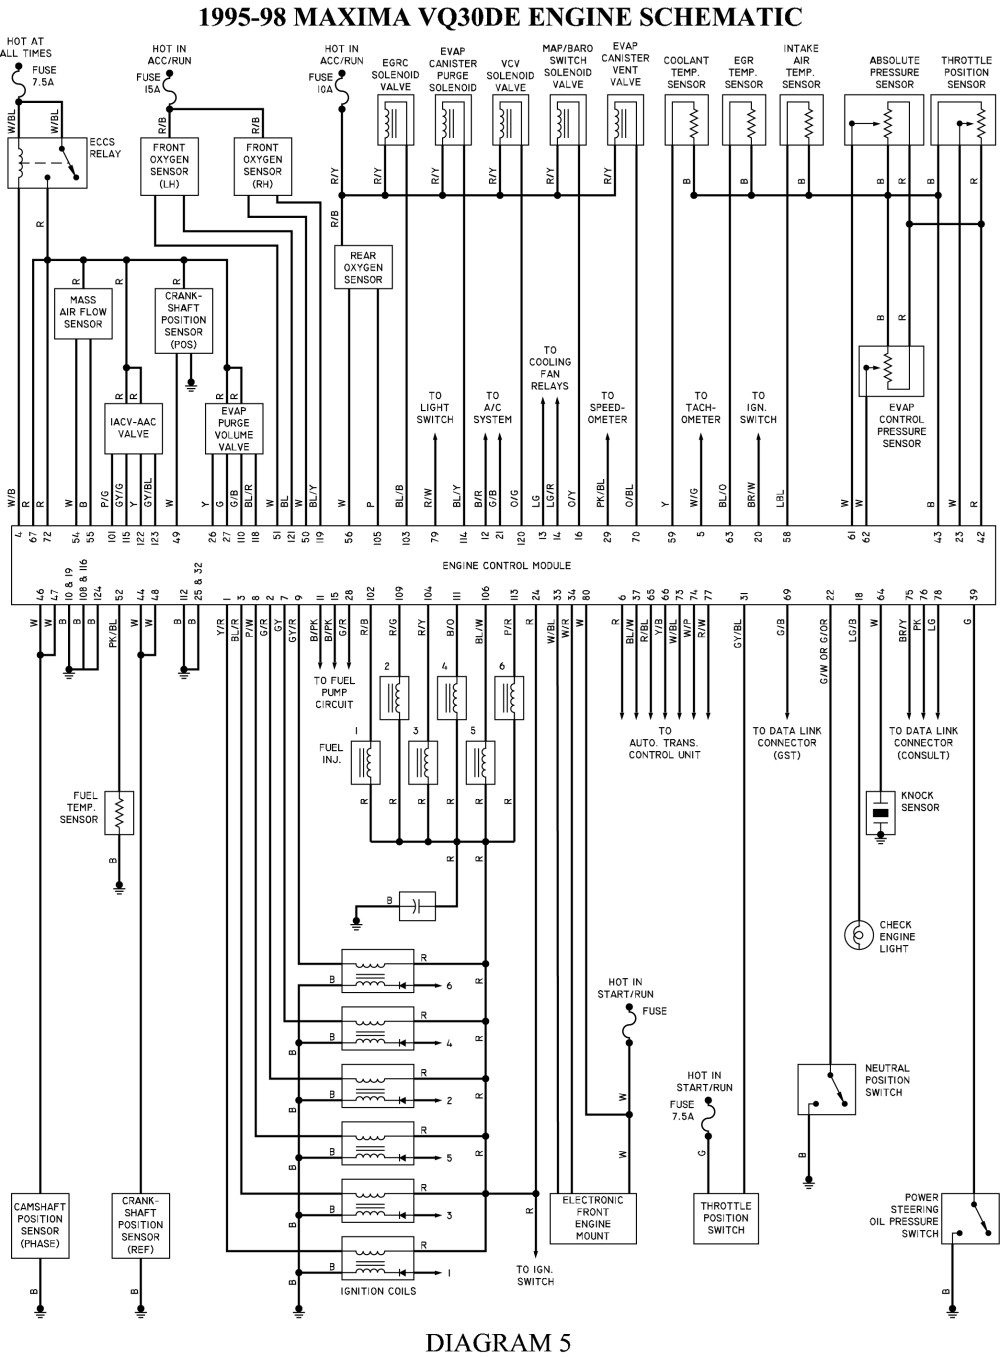 1995 Nissan Sentra Fuse Diagram Wiring Library Panel For 1992 1998 Complete Diagrams U2022 2005 350z